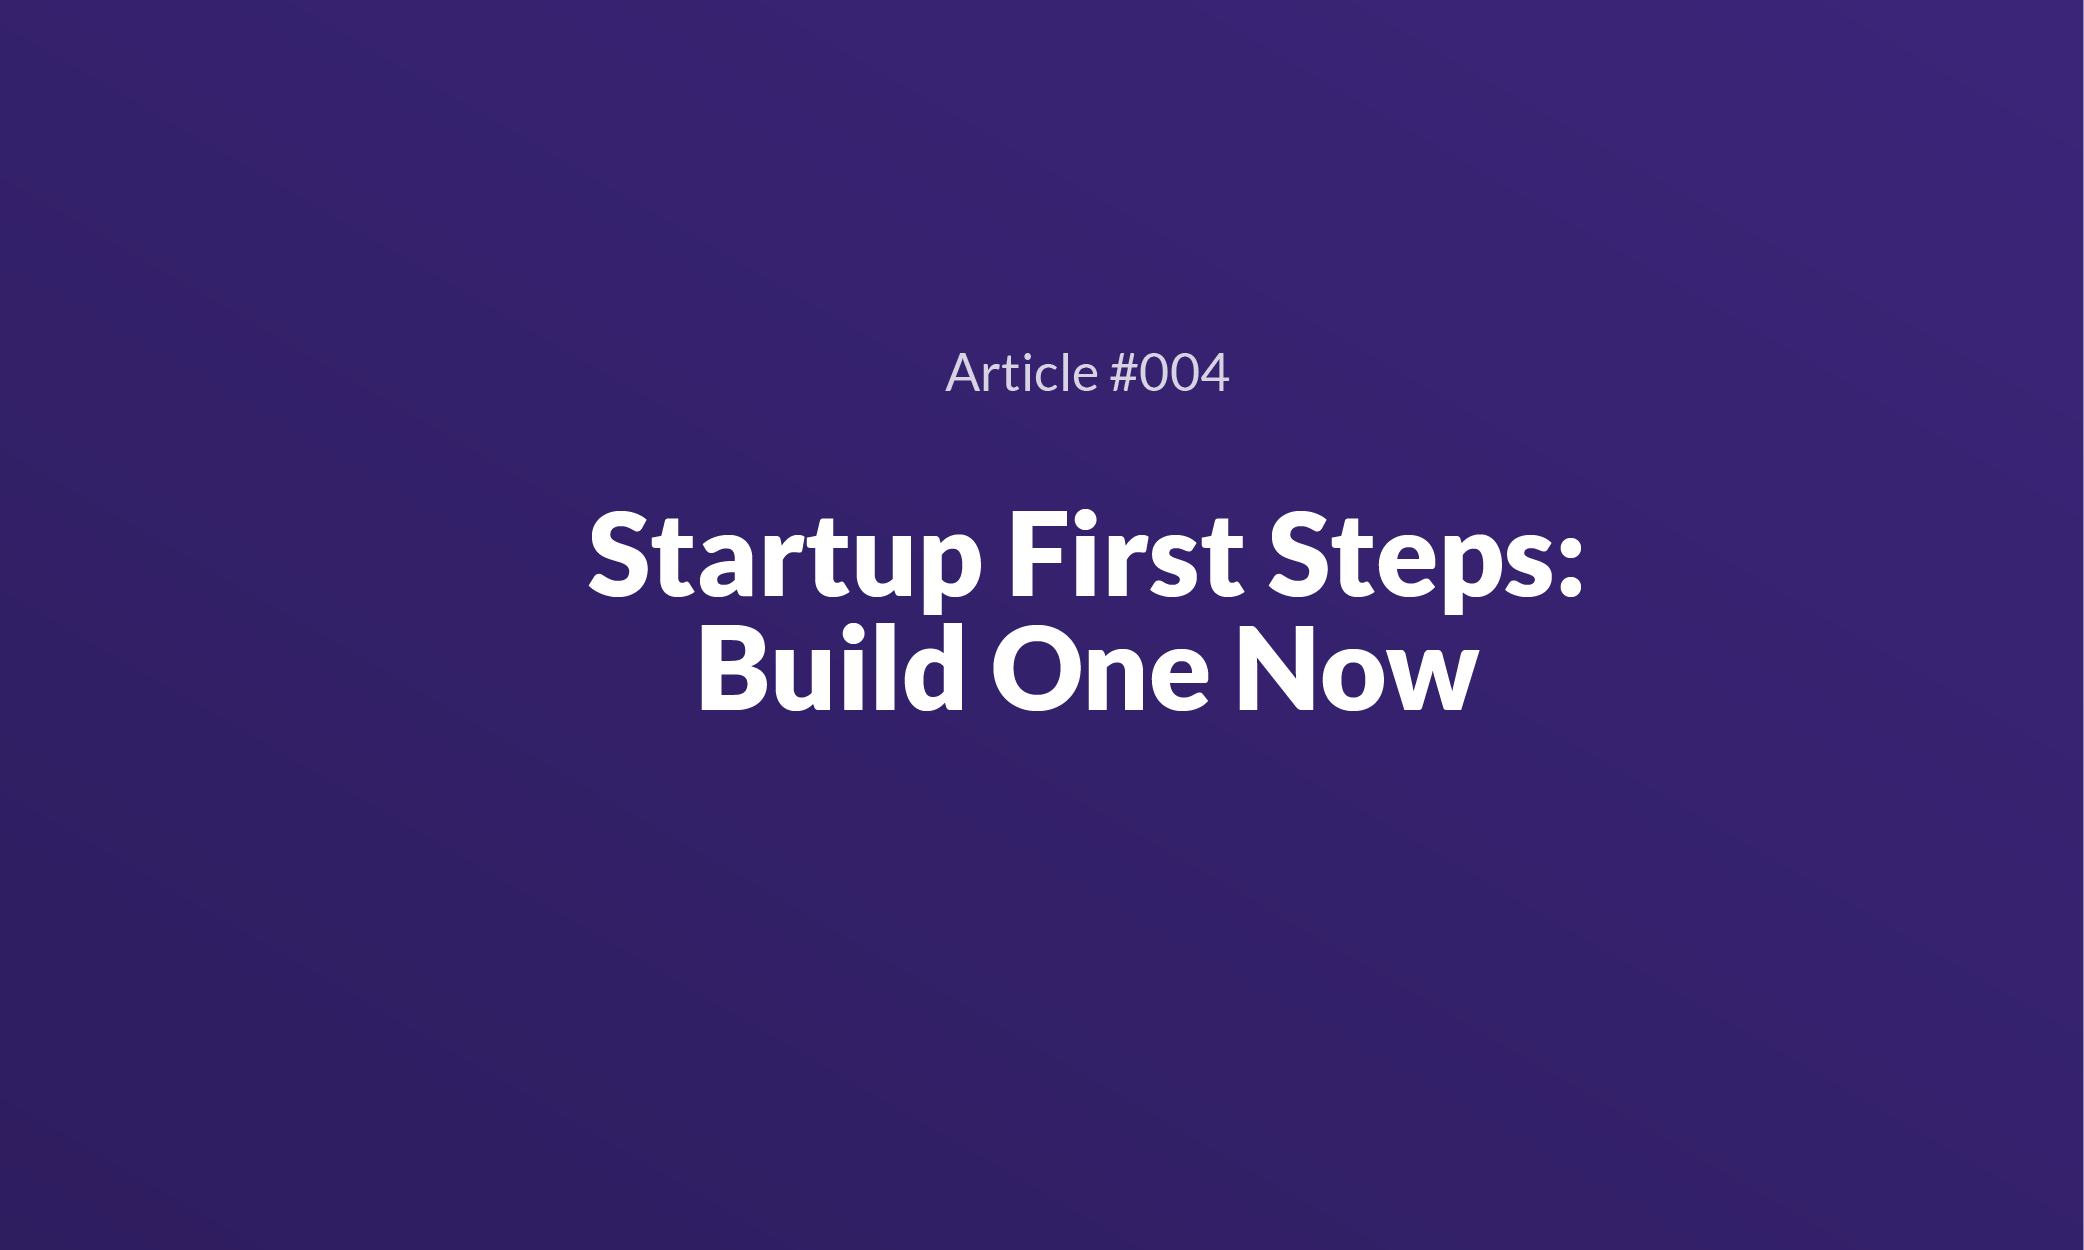 Startup First Steps